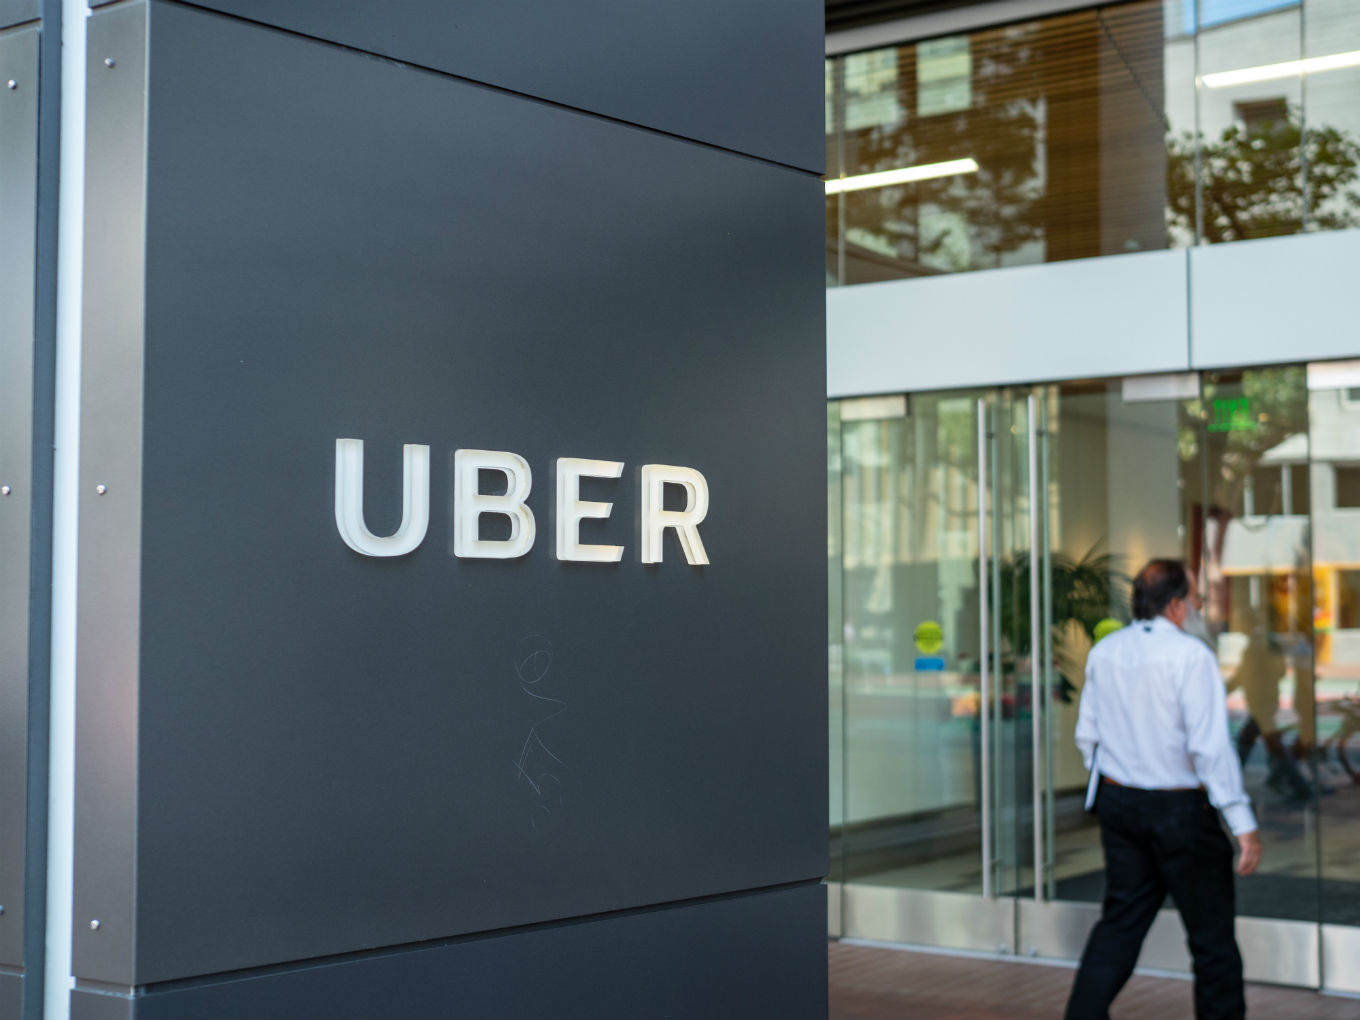 Uber Seeks $8 Bn-$10 Bn IPO But Will It Help Its Fortunes In India?